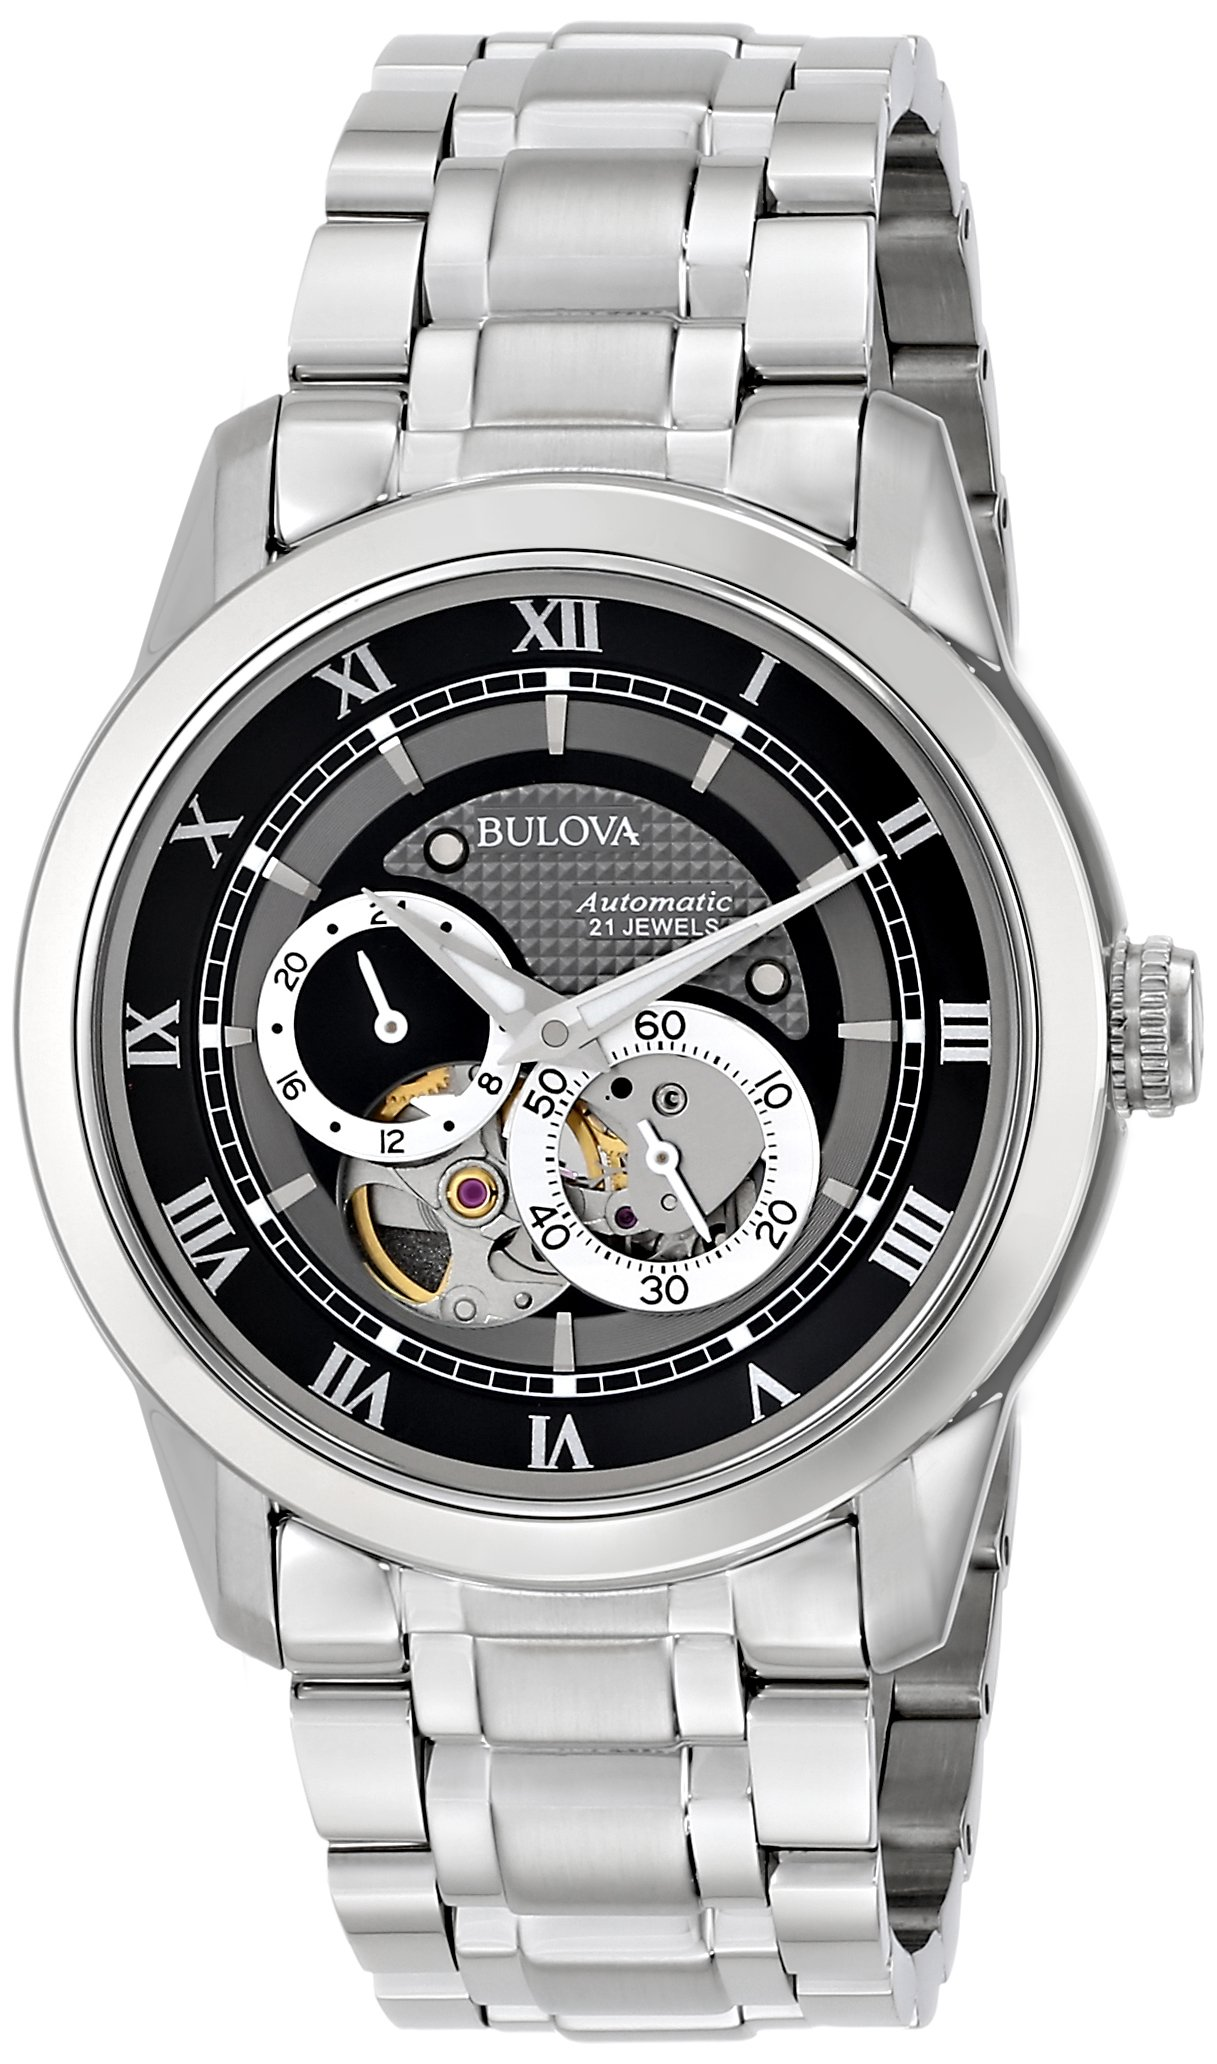 Bulova Men's 96A119 ''BVA'' Automatic Stainless Steel Watch with Link Bracelet